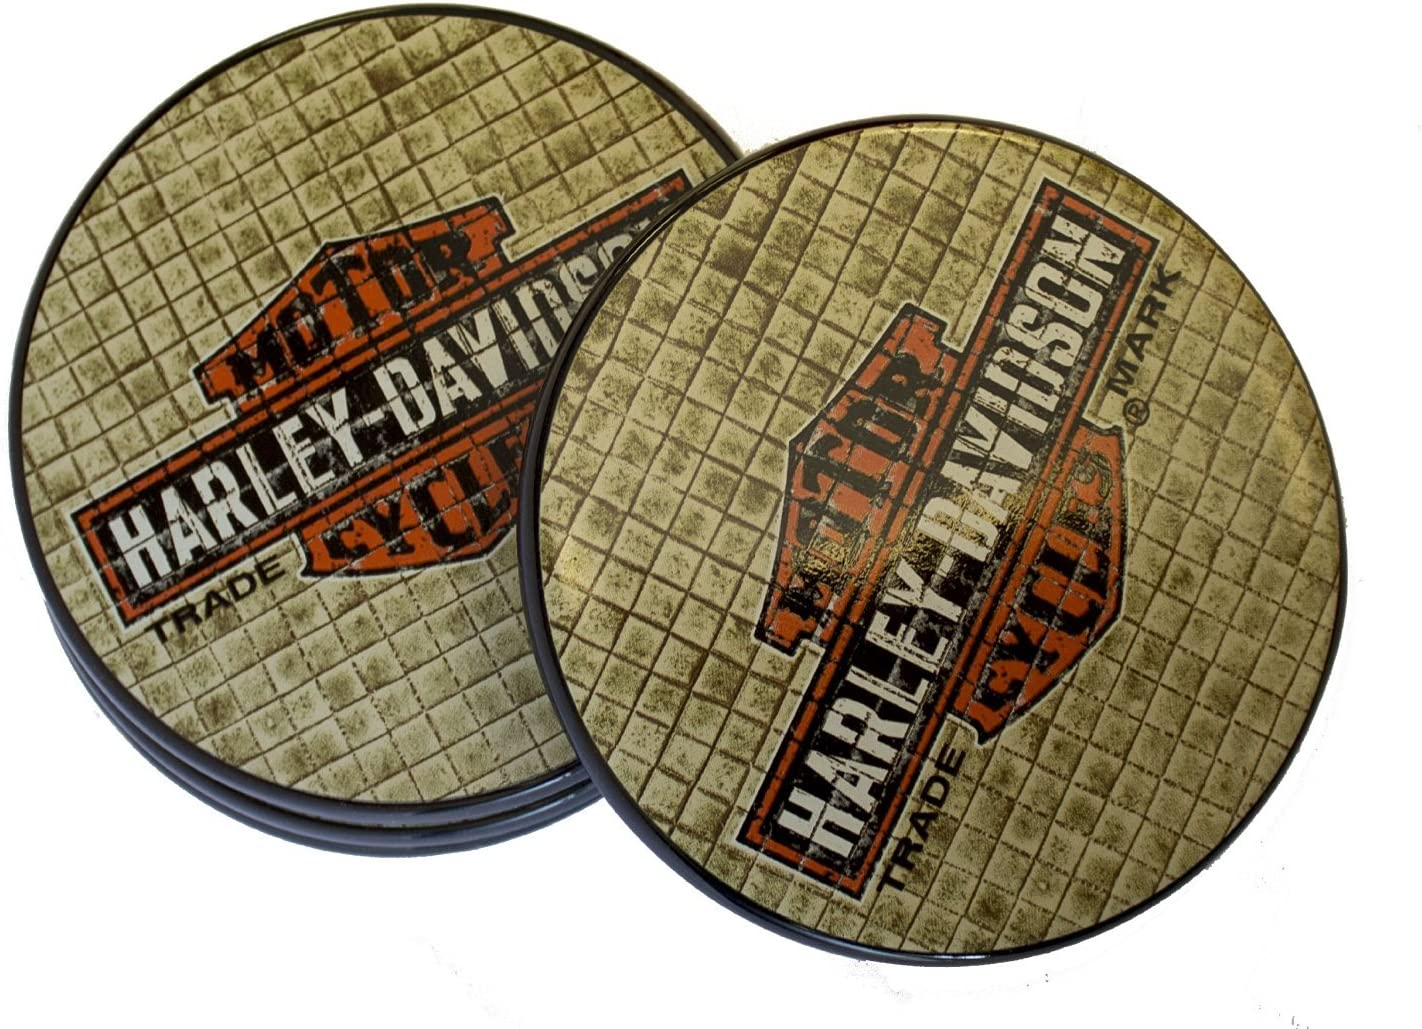 Knoxville Official Ceramic Car Coasters The Memory Company NCAA University of Tennessee 2 Pack One Size Multicolor